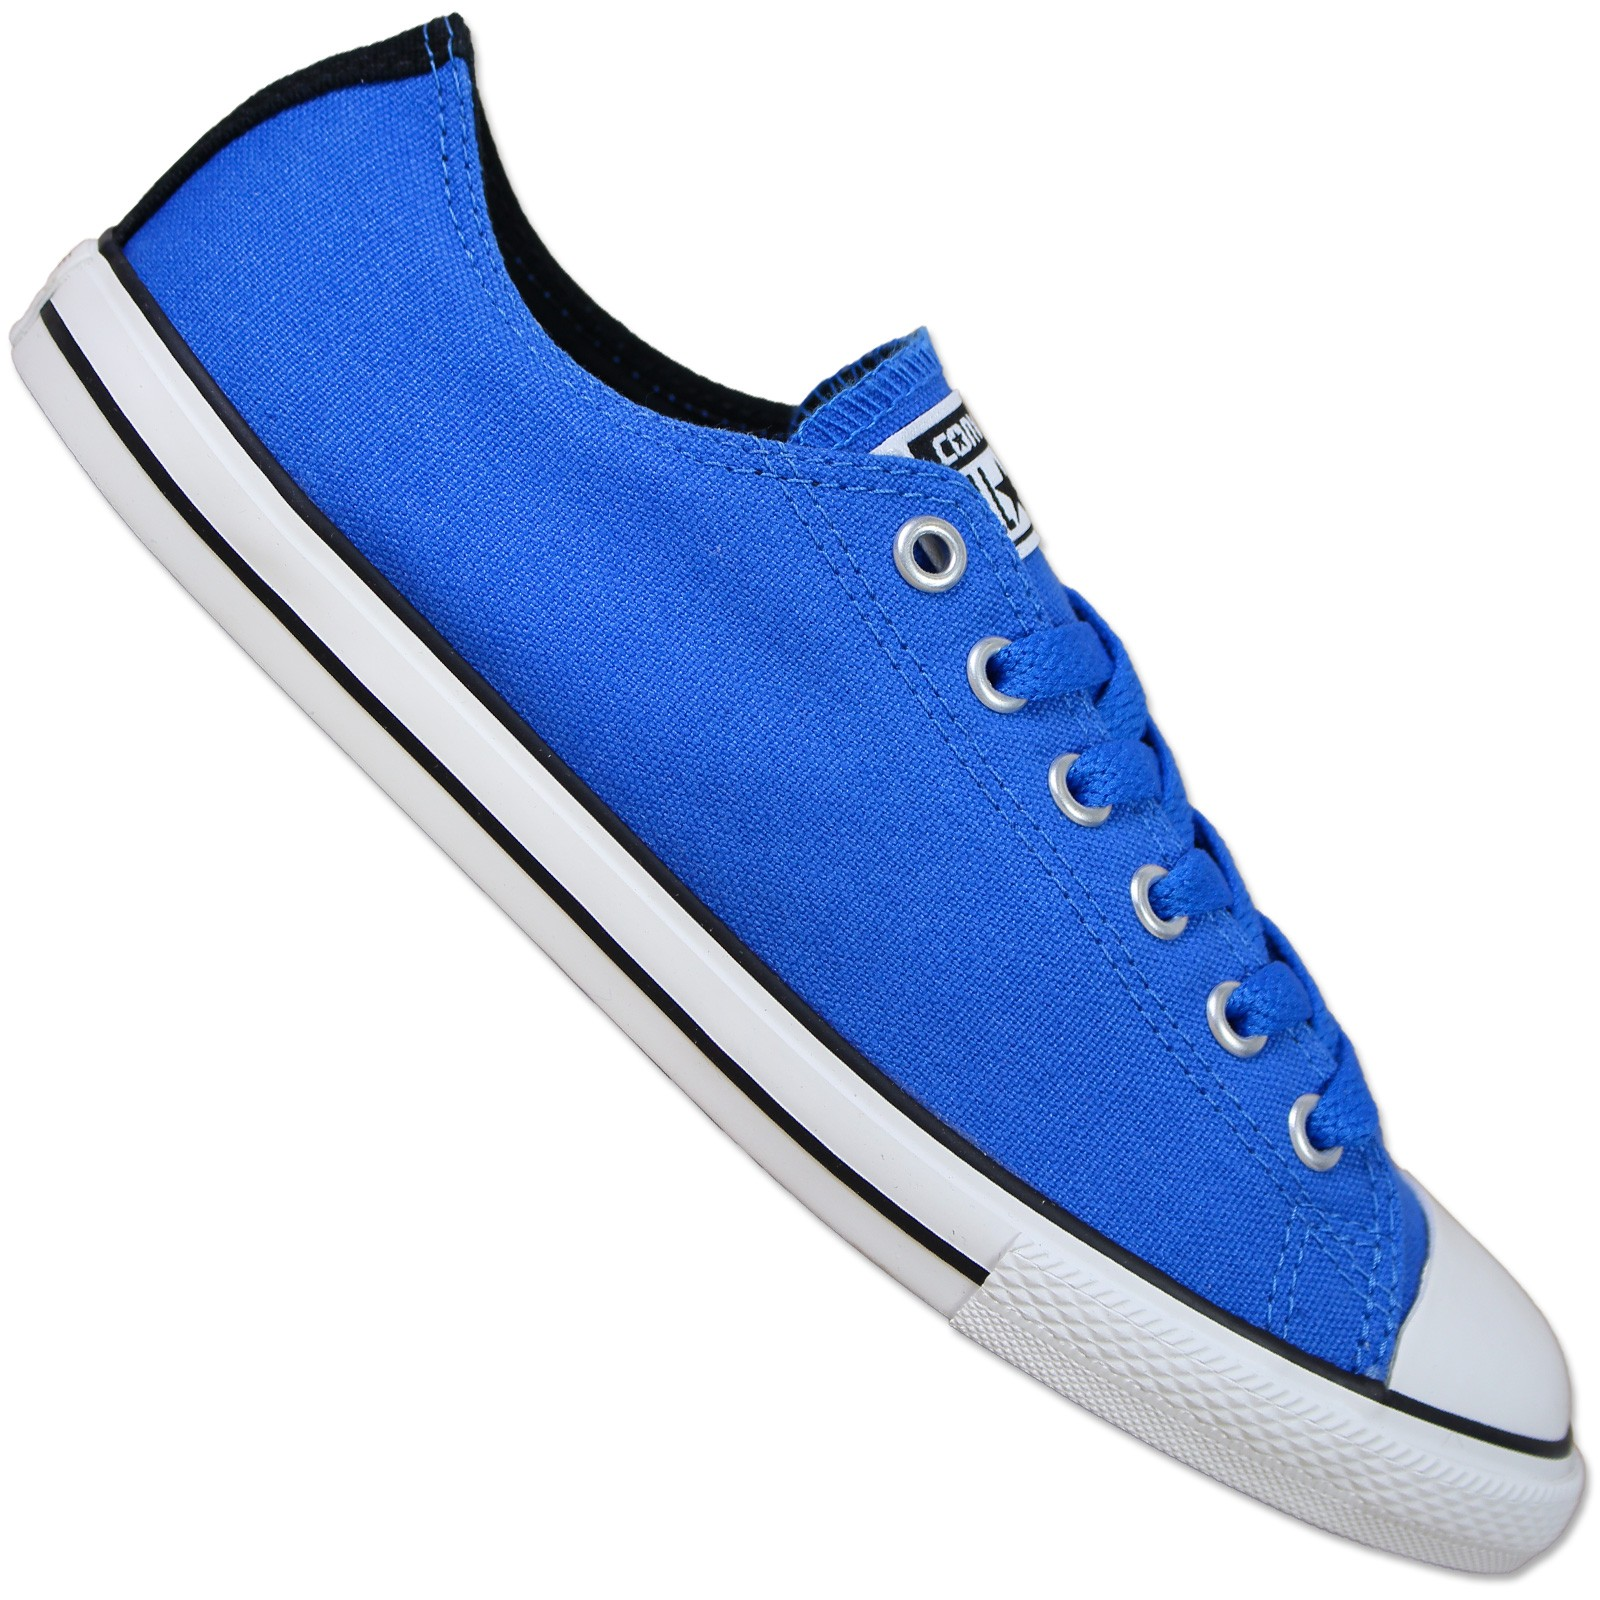 converse ct east coater star chuck taylor ox schuhe blau. Black Bedroom Furniture Sets. Home Design Ideas